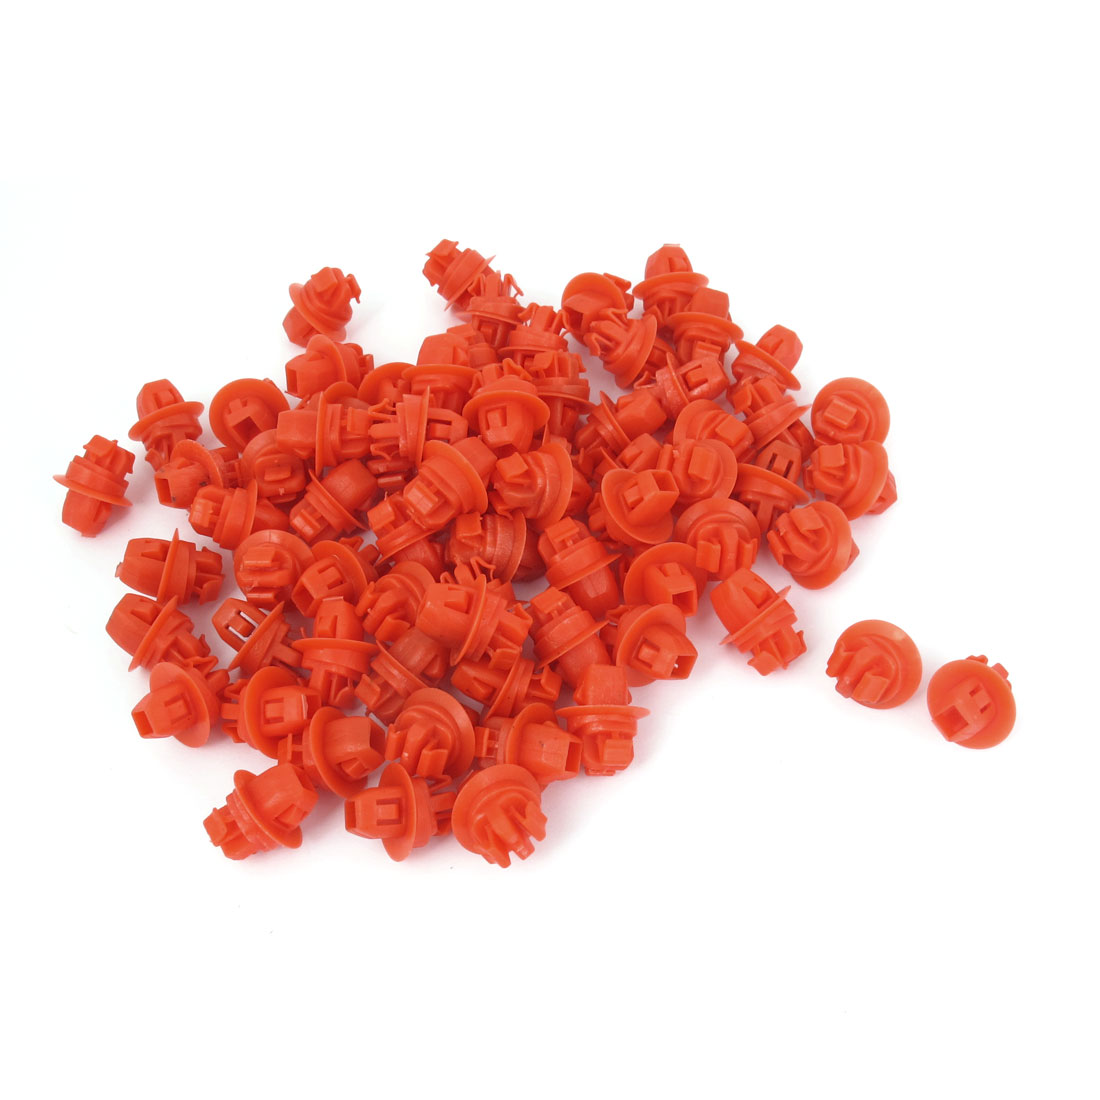 82 Pcs Red Push-Type Plastic Retainer Clips 10 x 16 x 9mm for Toyota